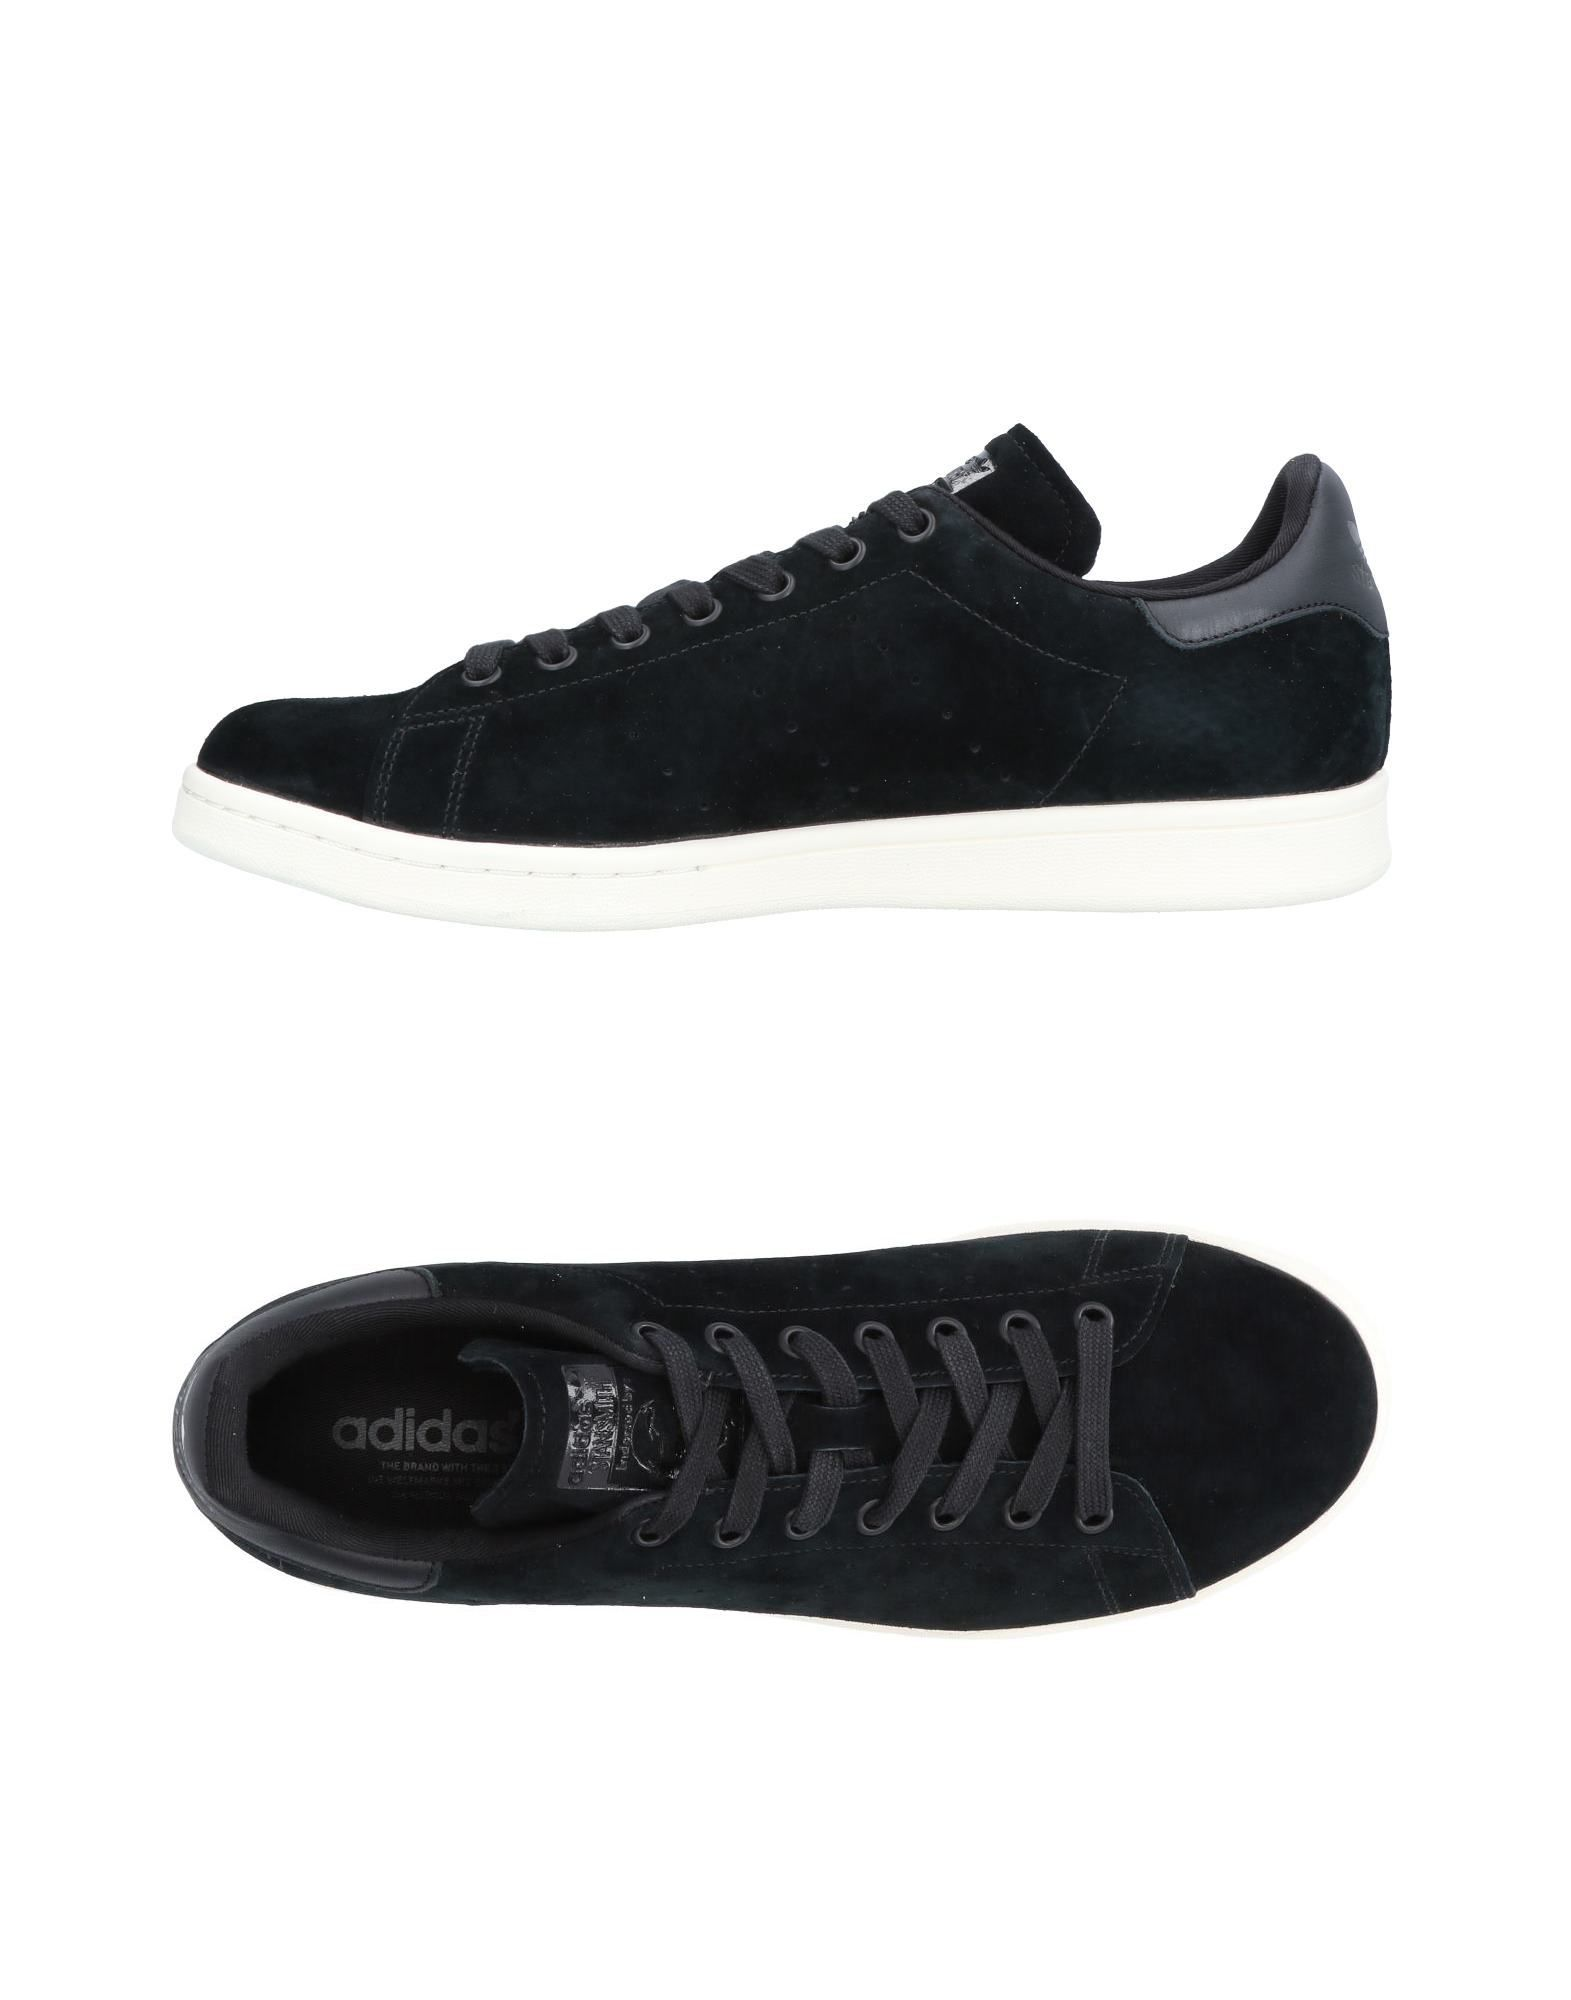 Adidas Originals Sneakers - Men Adidas Originals Sneakers Sneakers Sneakers online on  United Kingdom - 11493622NK bad124